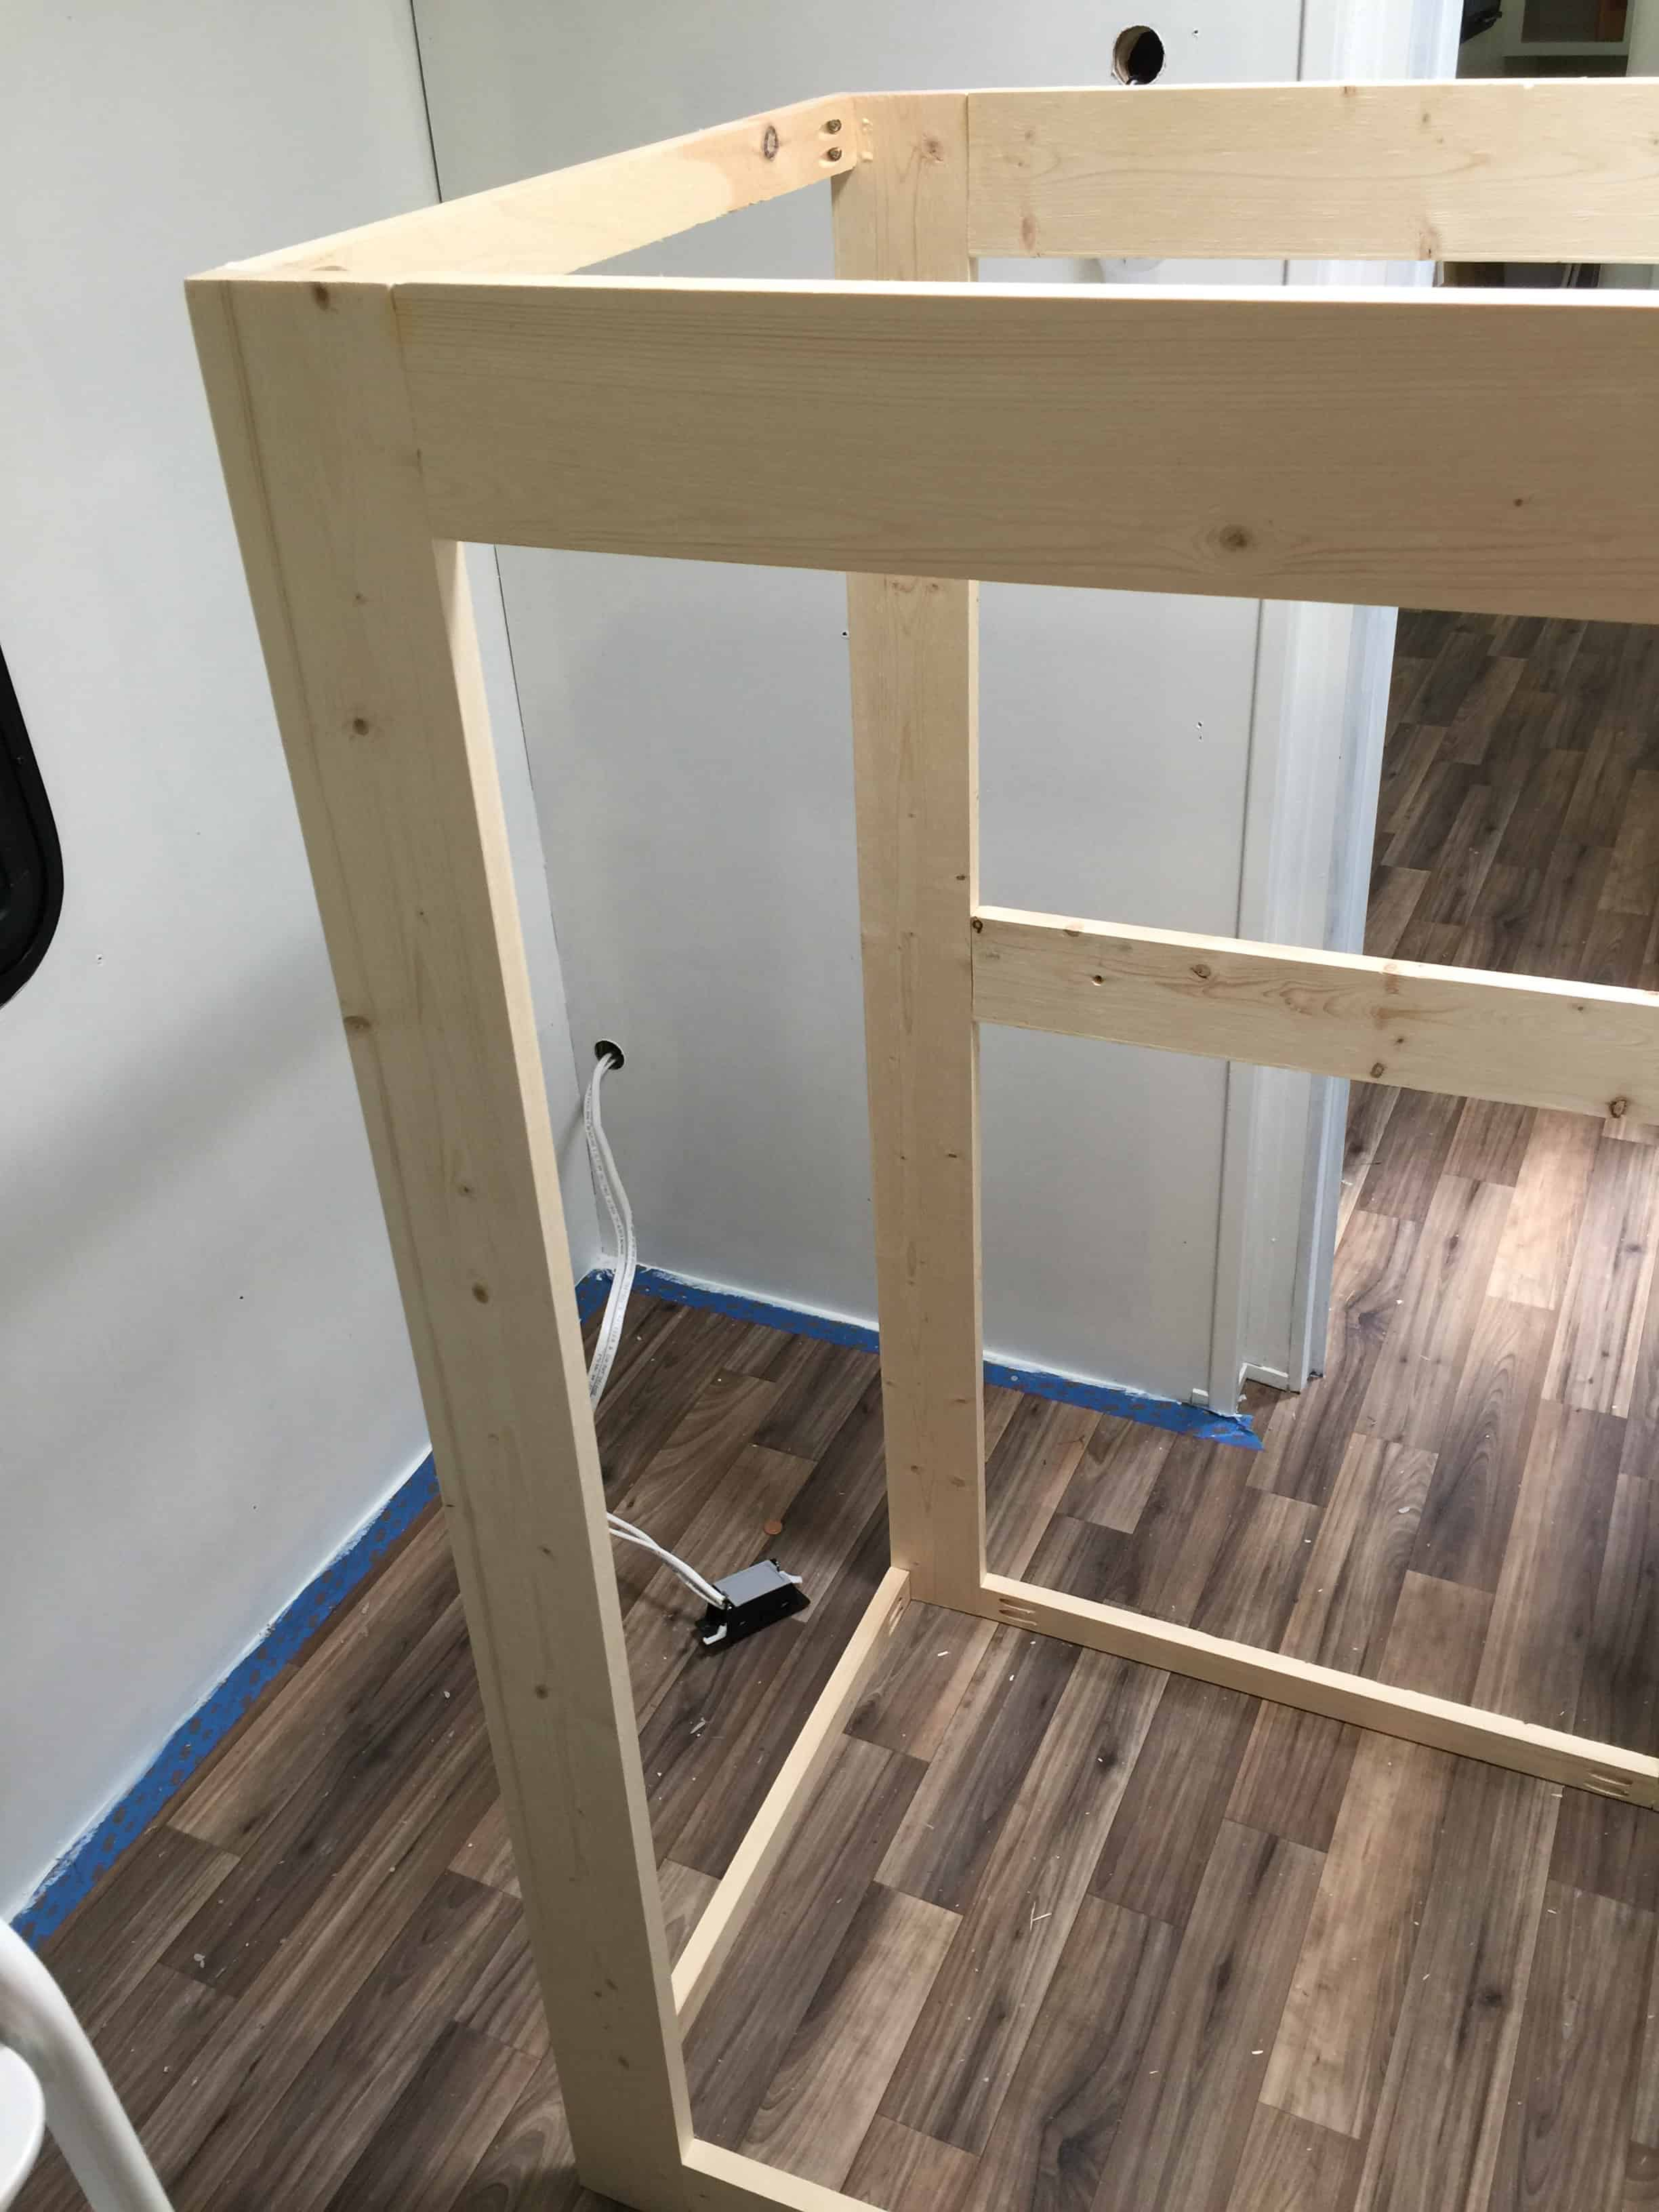 Saved by Scottie rv remodel cabinet build dresser cabinets assembly